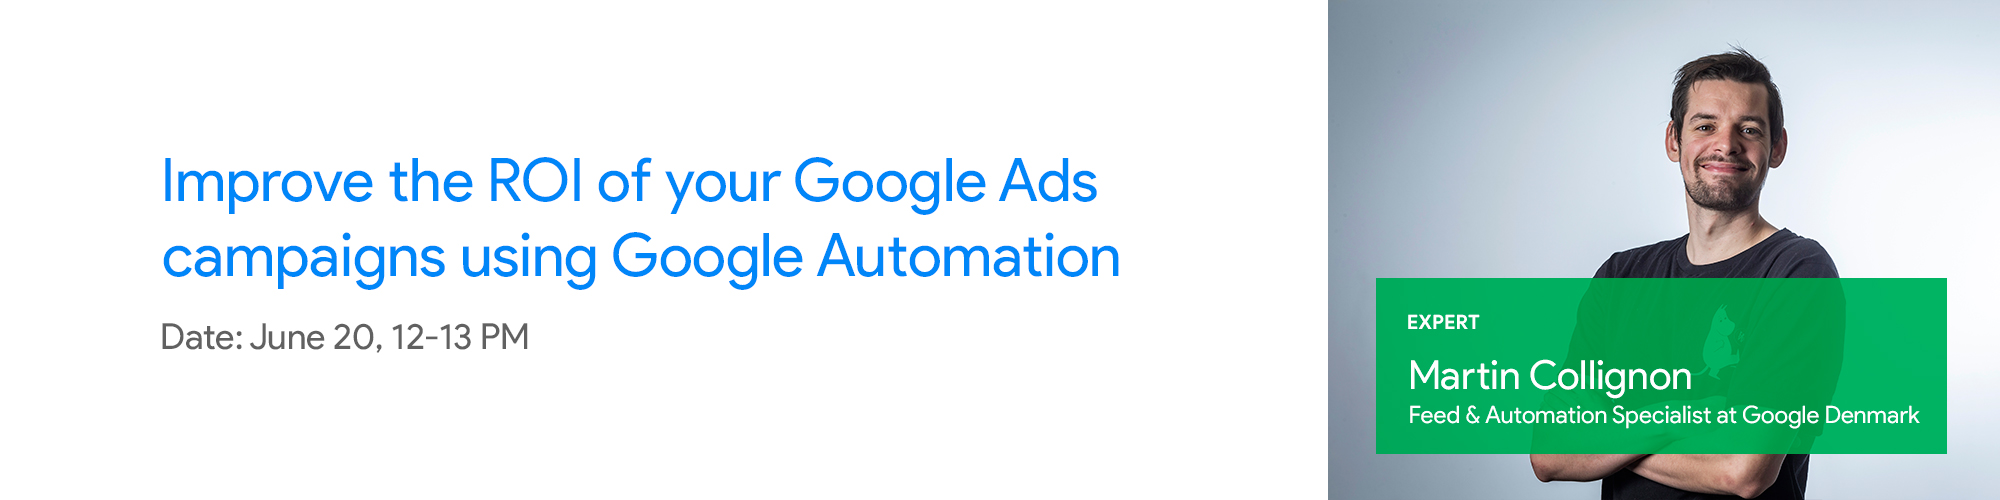 Festival: Improve the ROI of your Google Ads campaigns using Google Automation